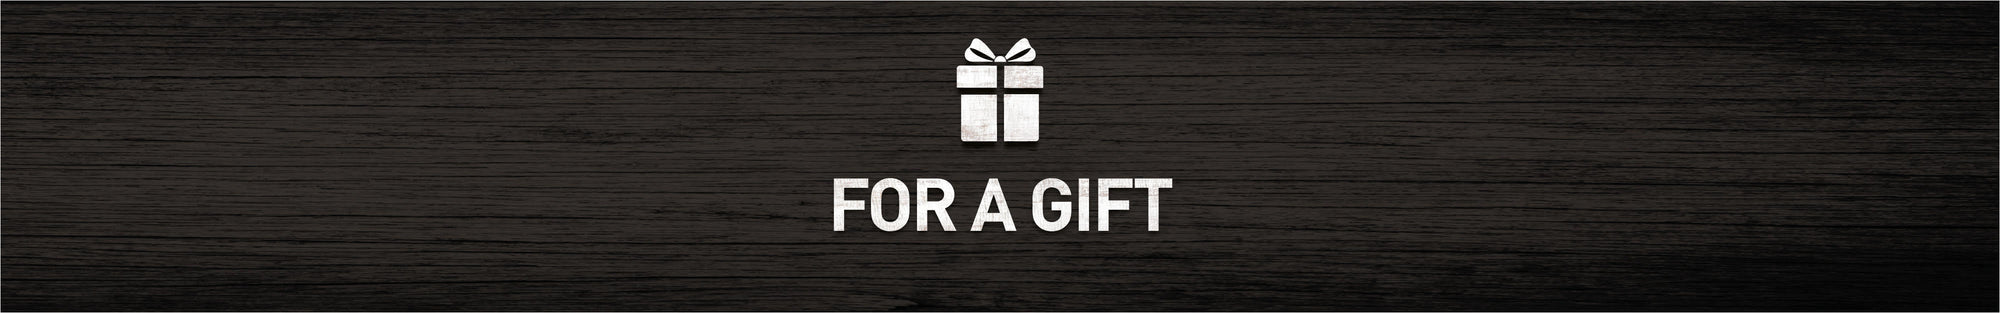 FOR A GIFT